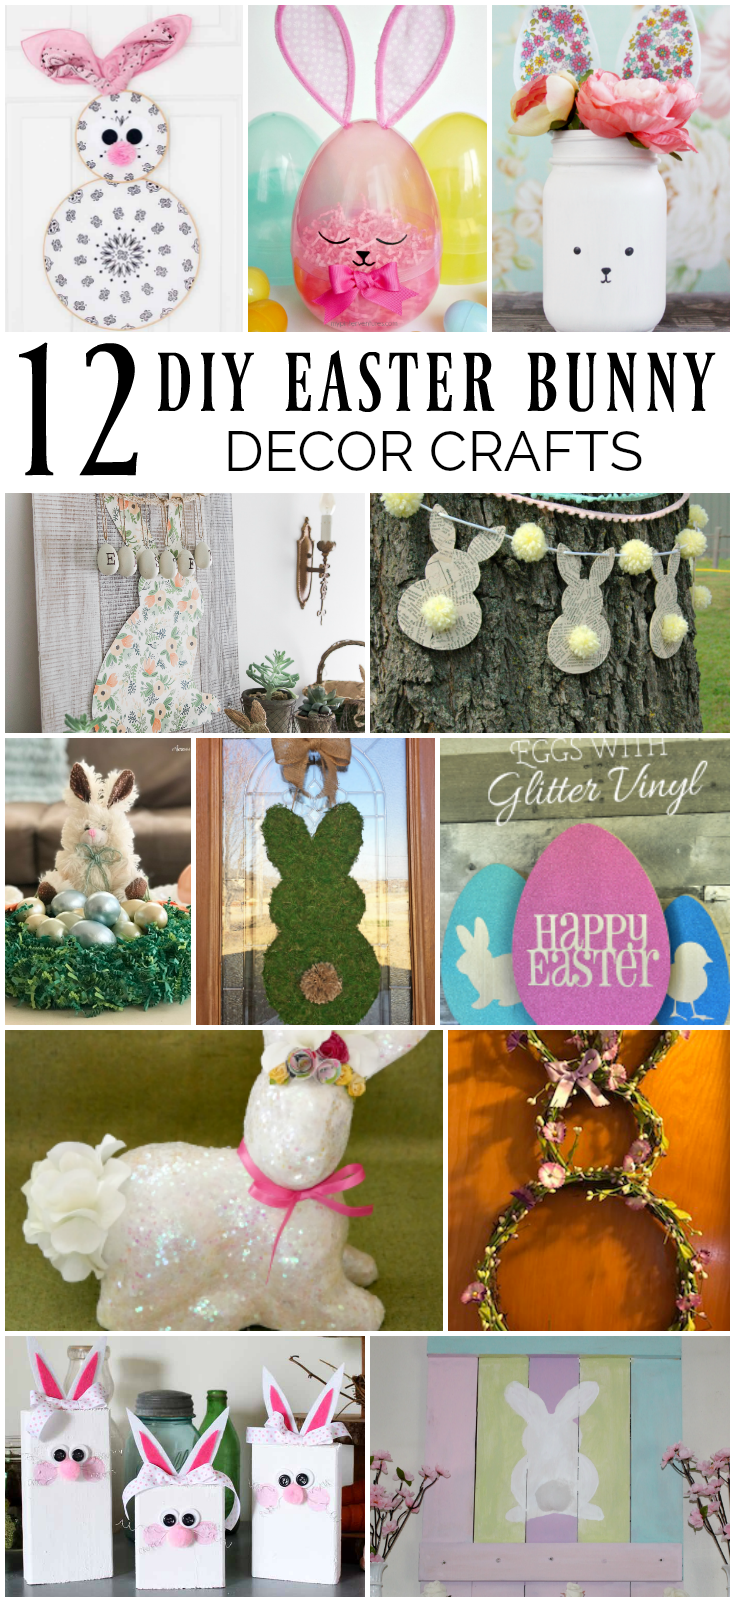 12 DIY Easter Bunny Decor Crafts